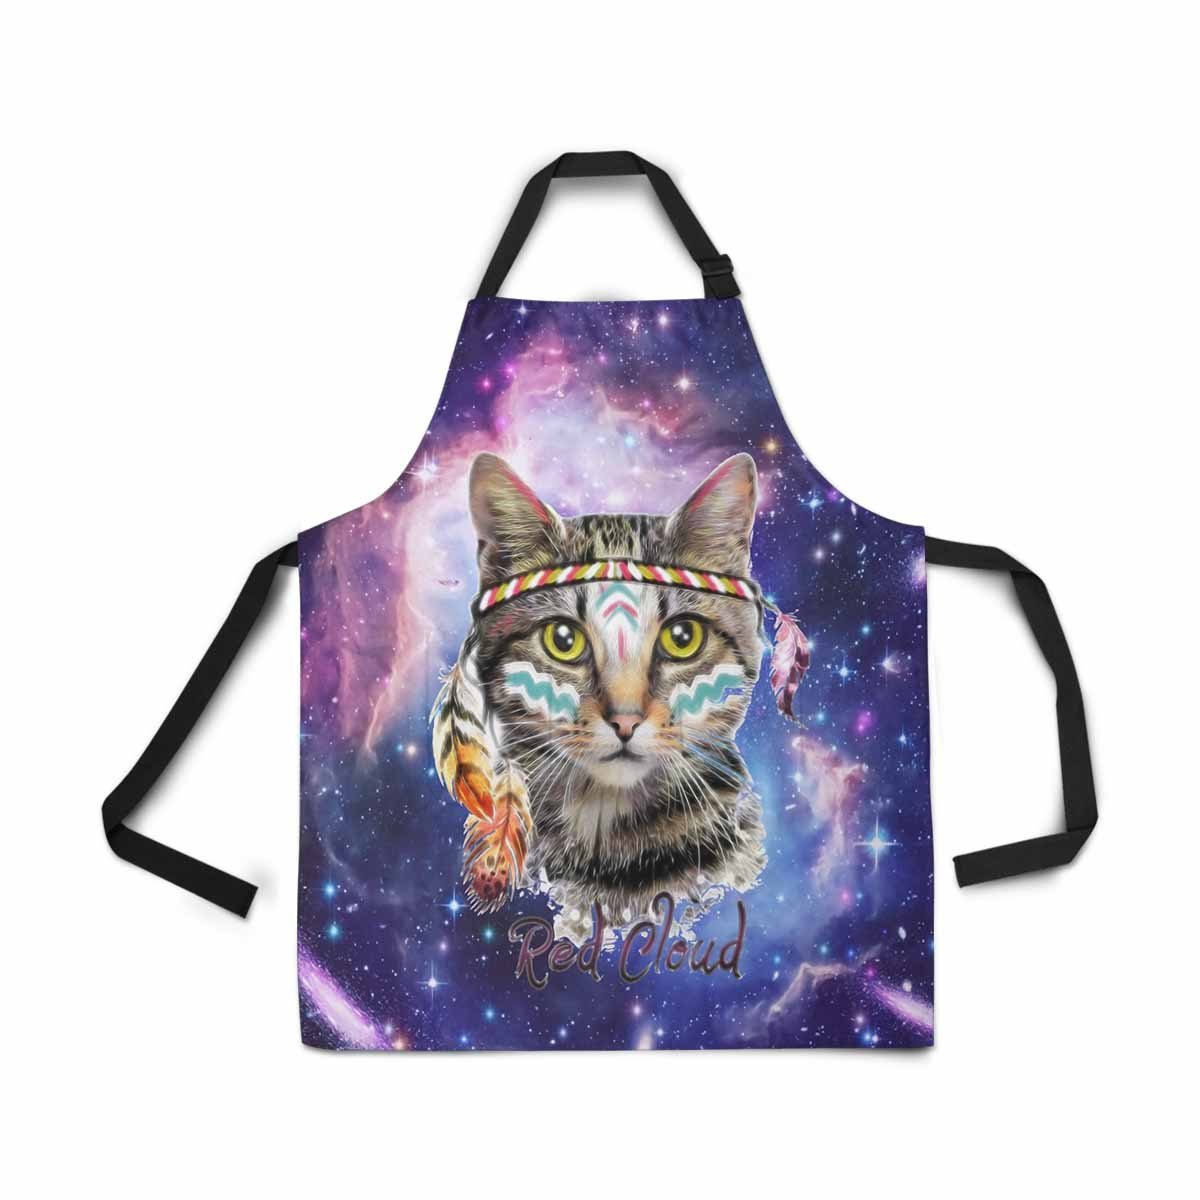 InterestPrint Abstract Star Galaxy Space Nebula Cat Apron for Women Men Girls Chef with Pockets, Hipster Animal in Universe Unisex Adjustable Bib Apron Kitchen for Cooking Baking Gardening Home